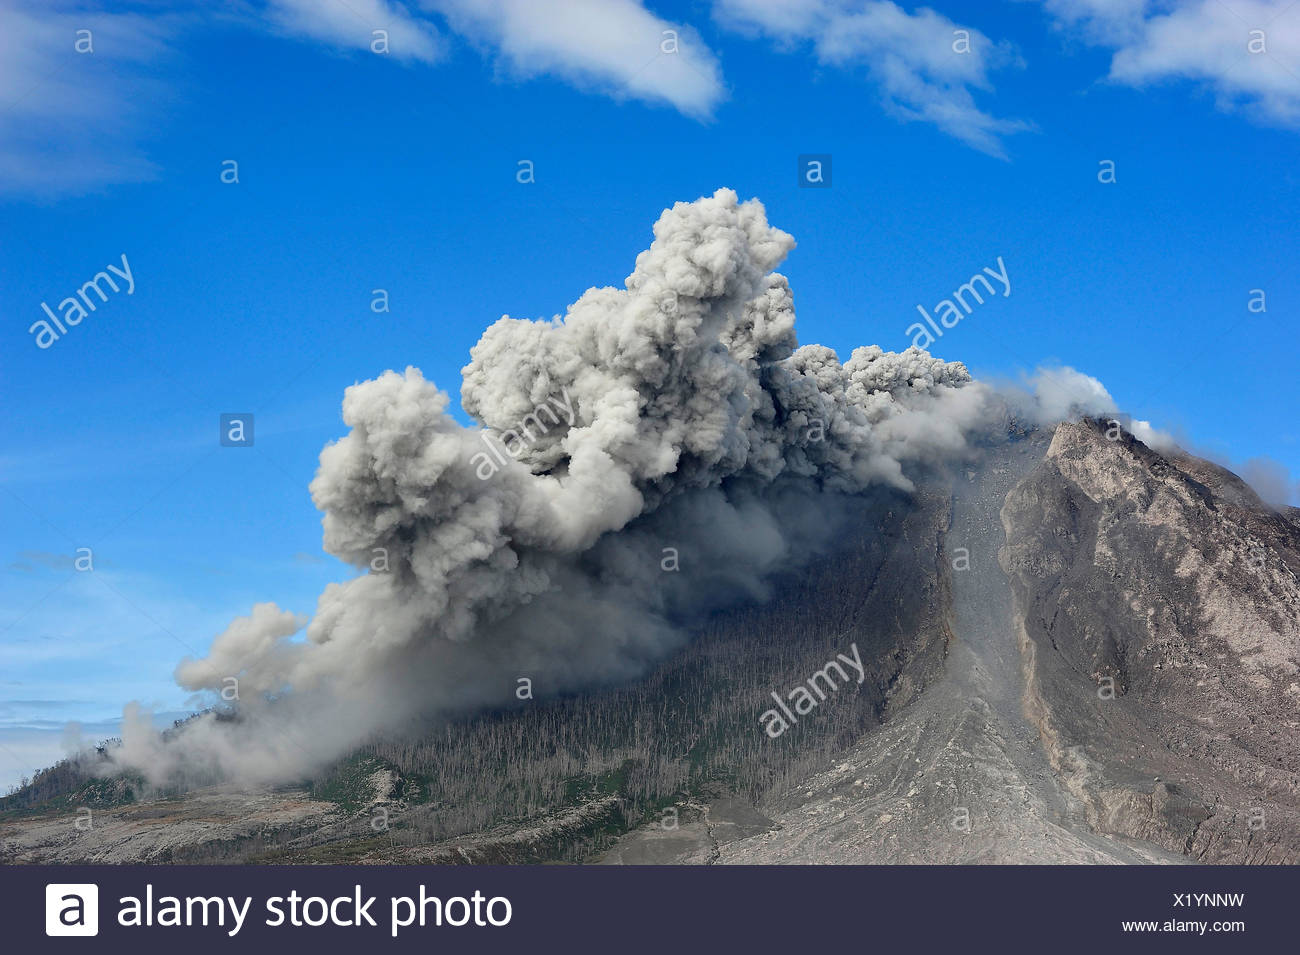 Volcano eruption with a pyroclastic cloud in the Mt. Sinabung. the slopes of the mountain with burnt trees - Stock Image